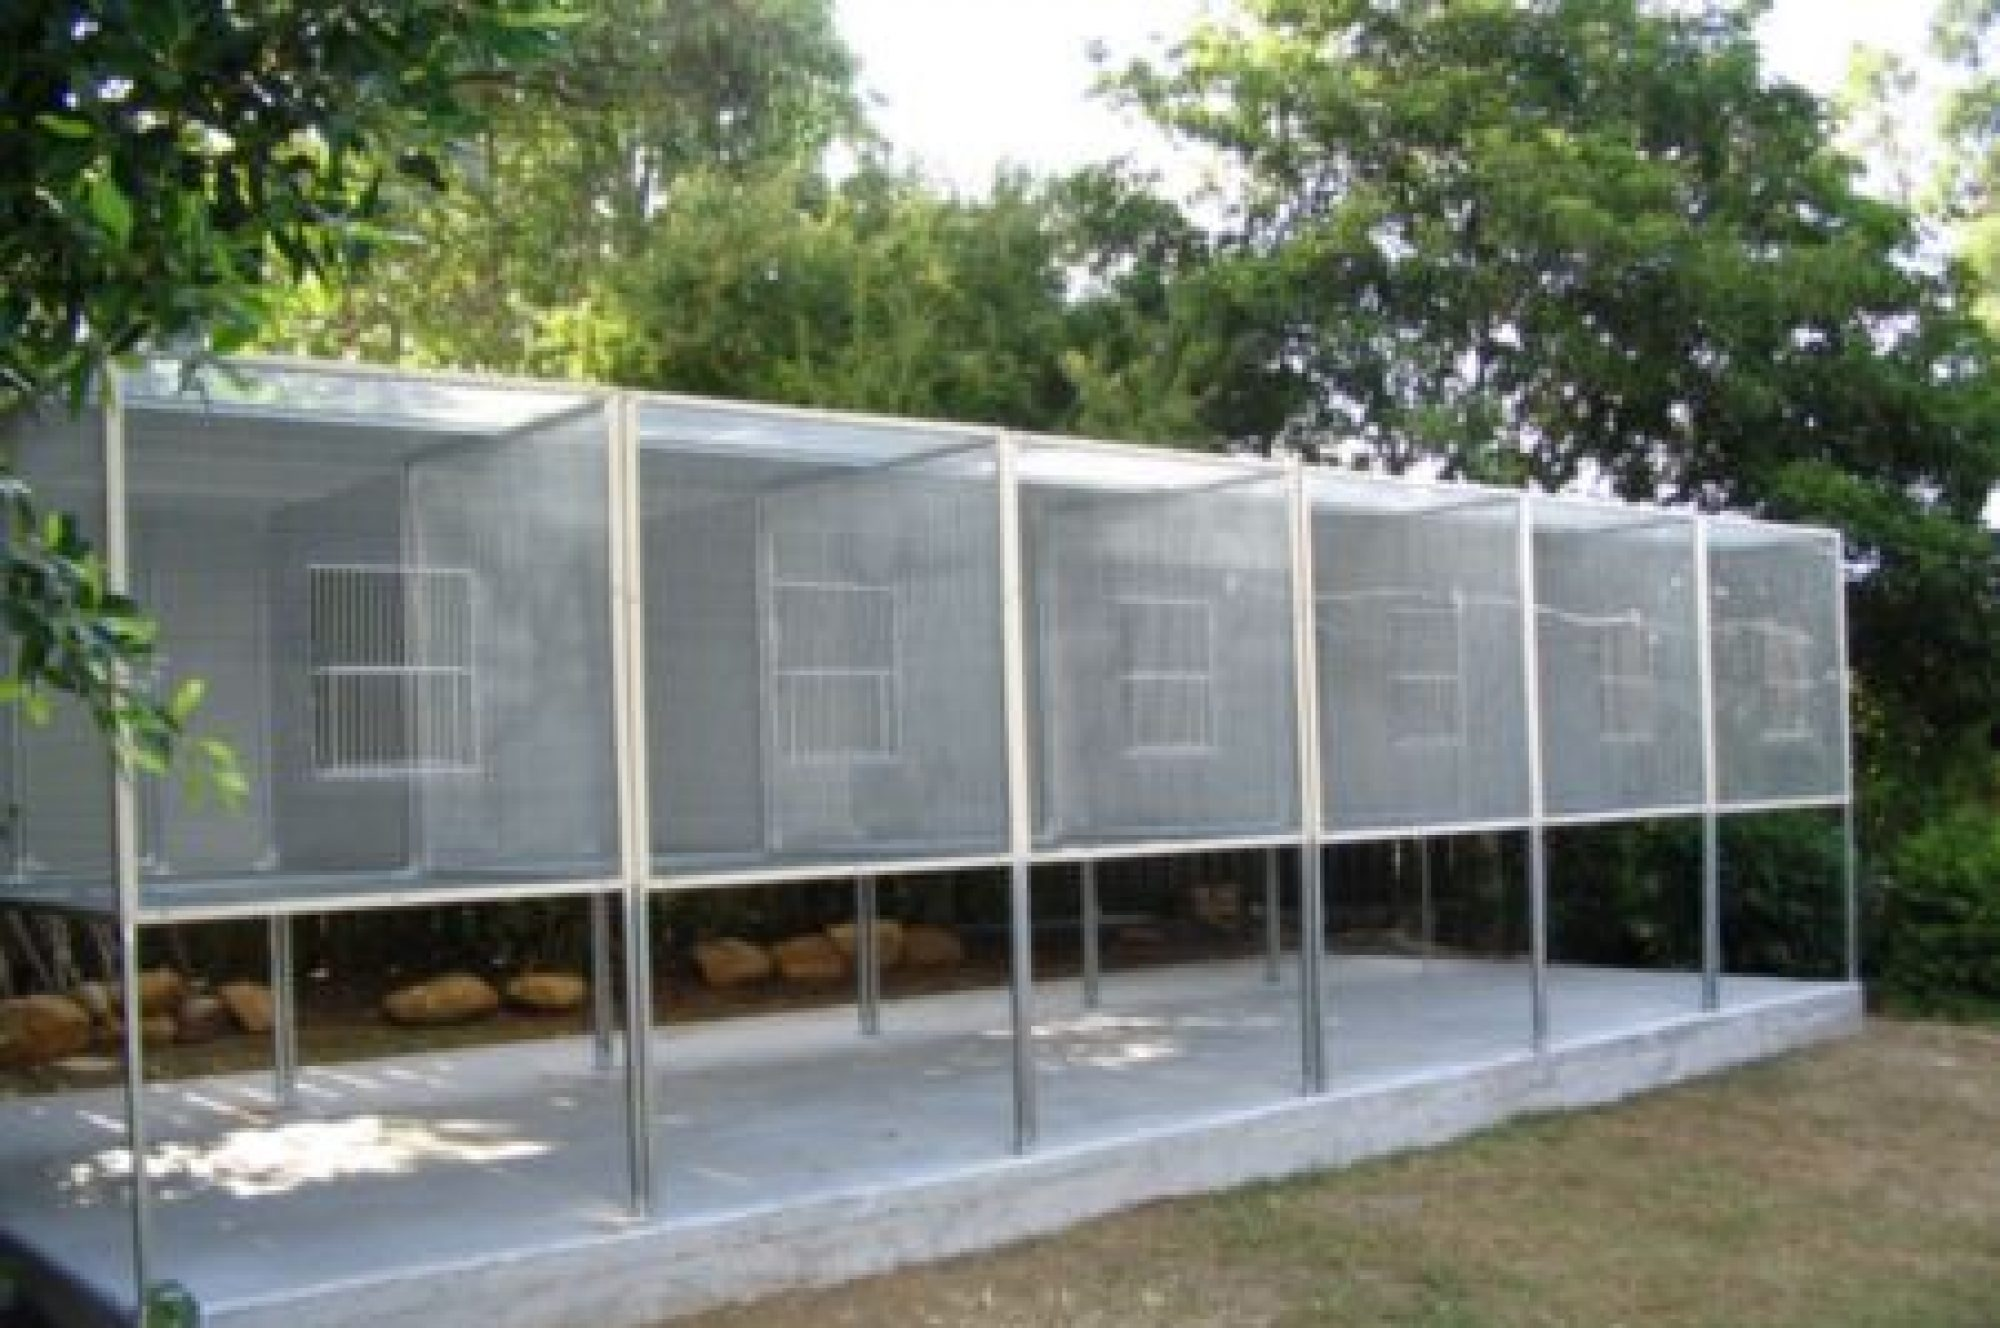 Clive's Quality Aviaries